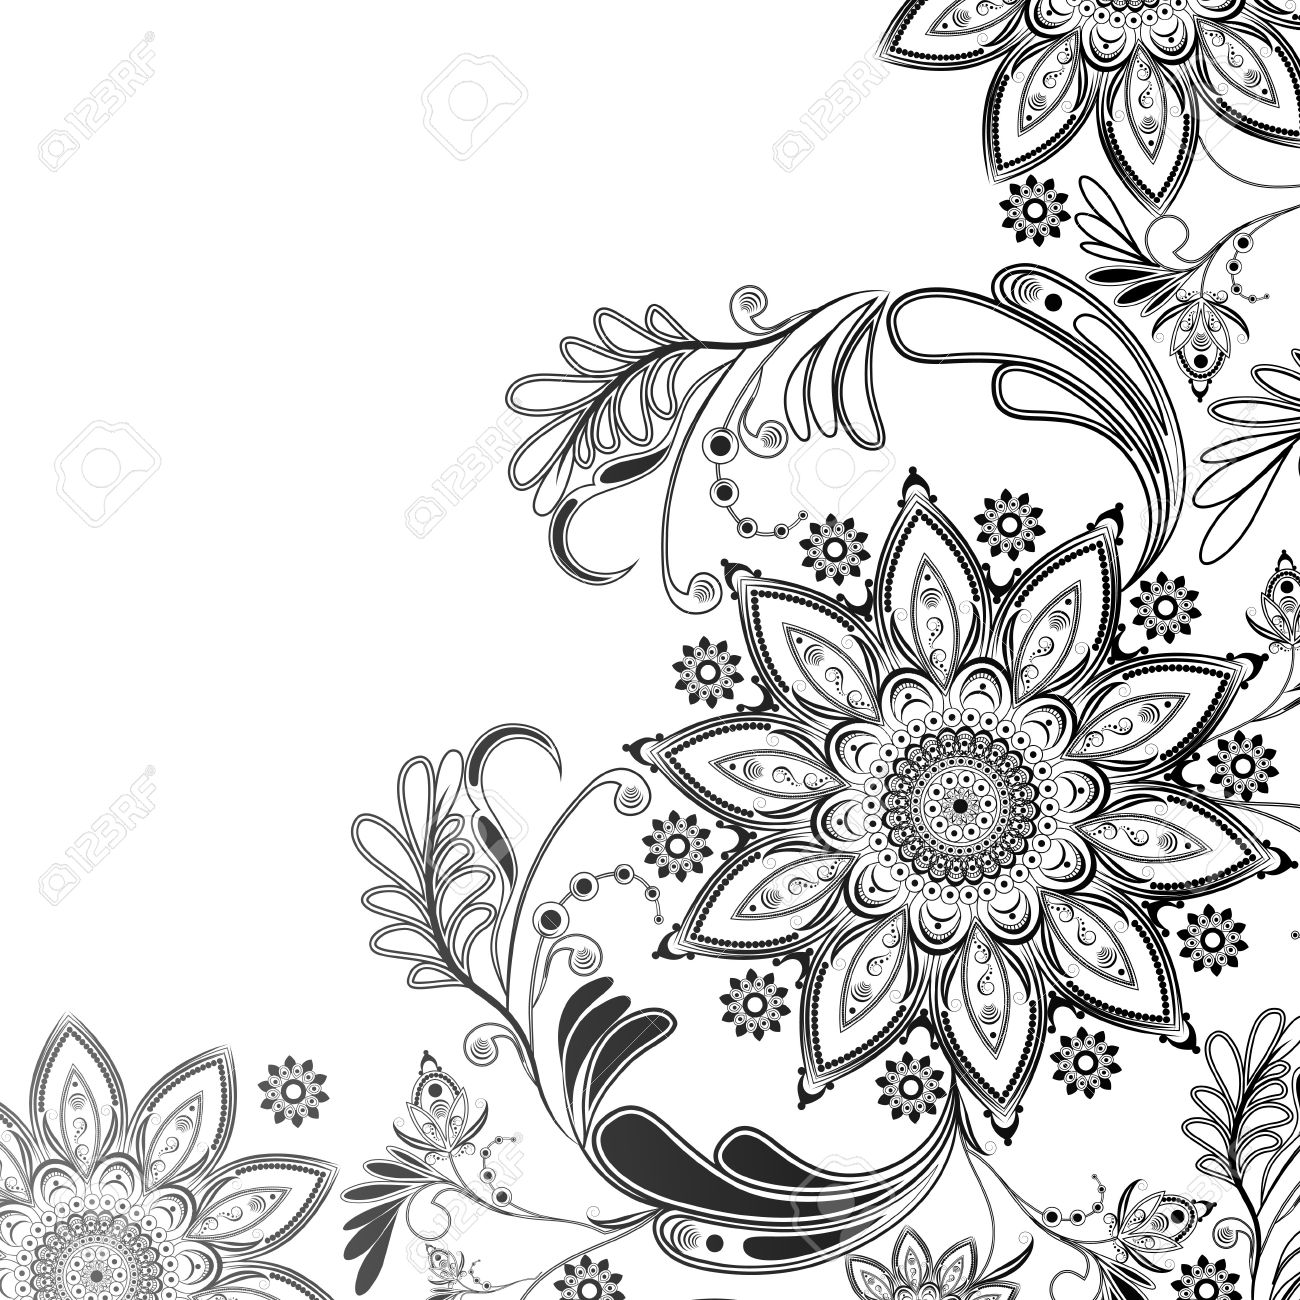 Abstract Floral Pattern In Black And White On The Eastern Motif